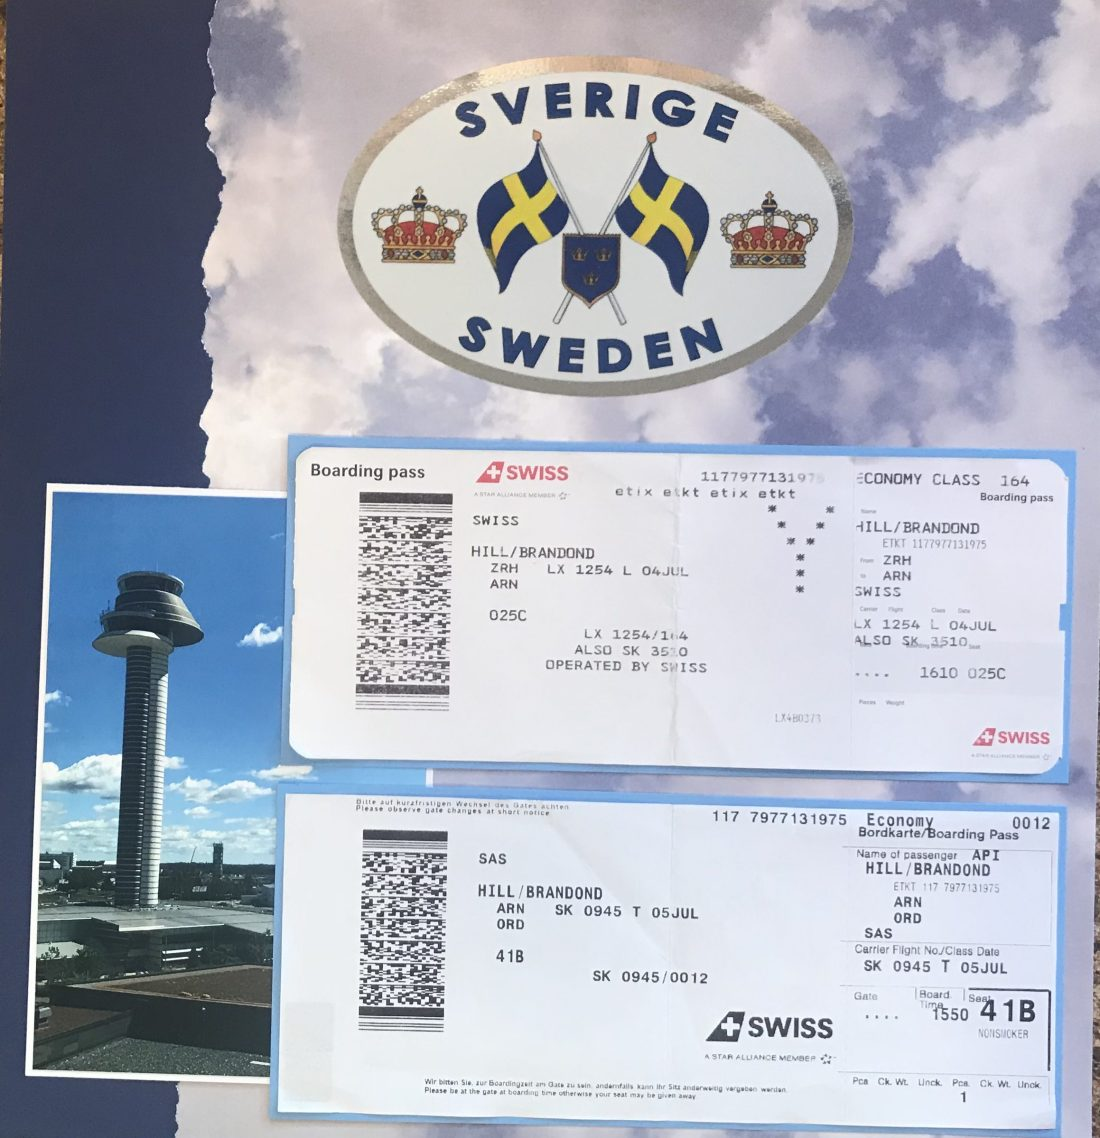 Germany 2017: Flight home through Stockholm